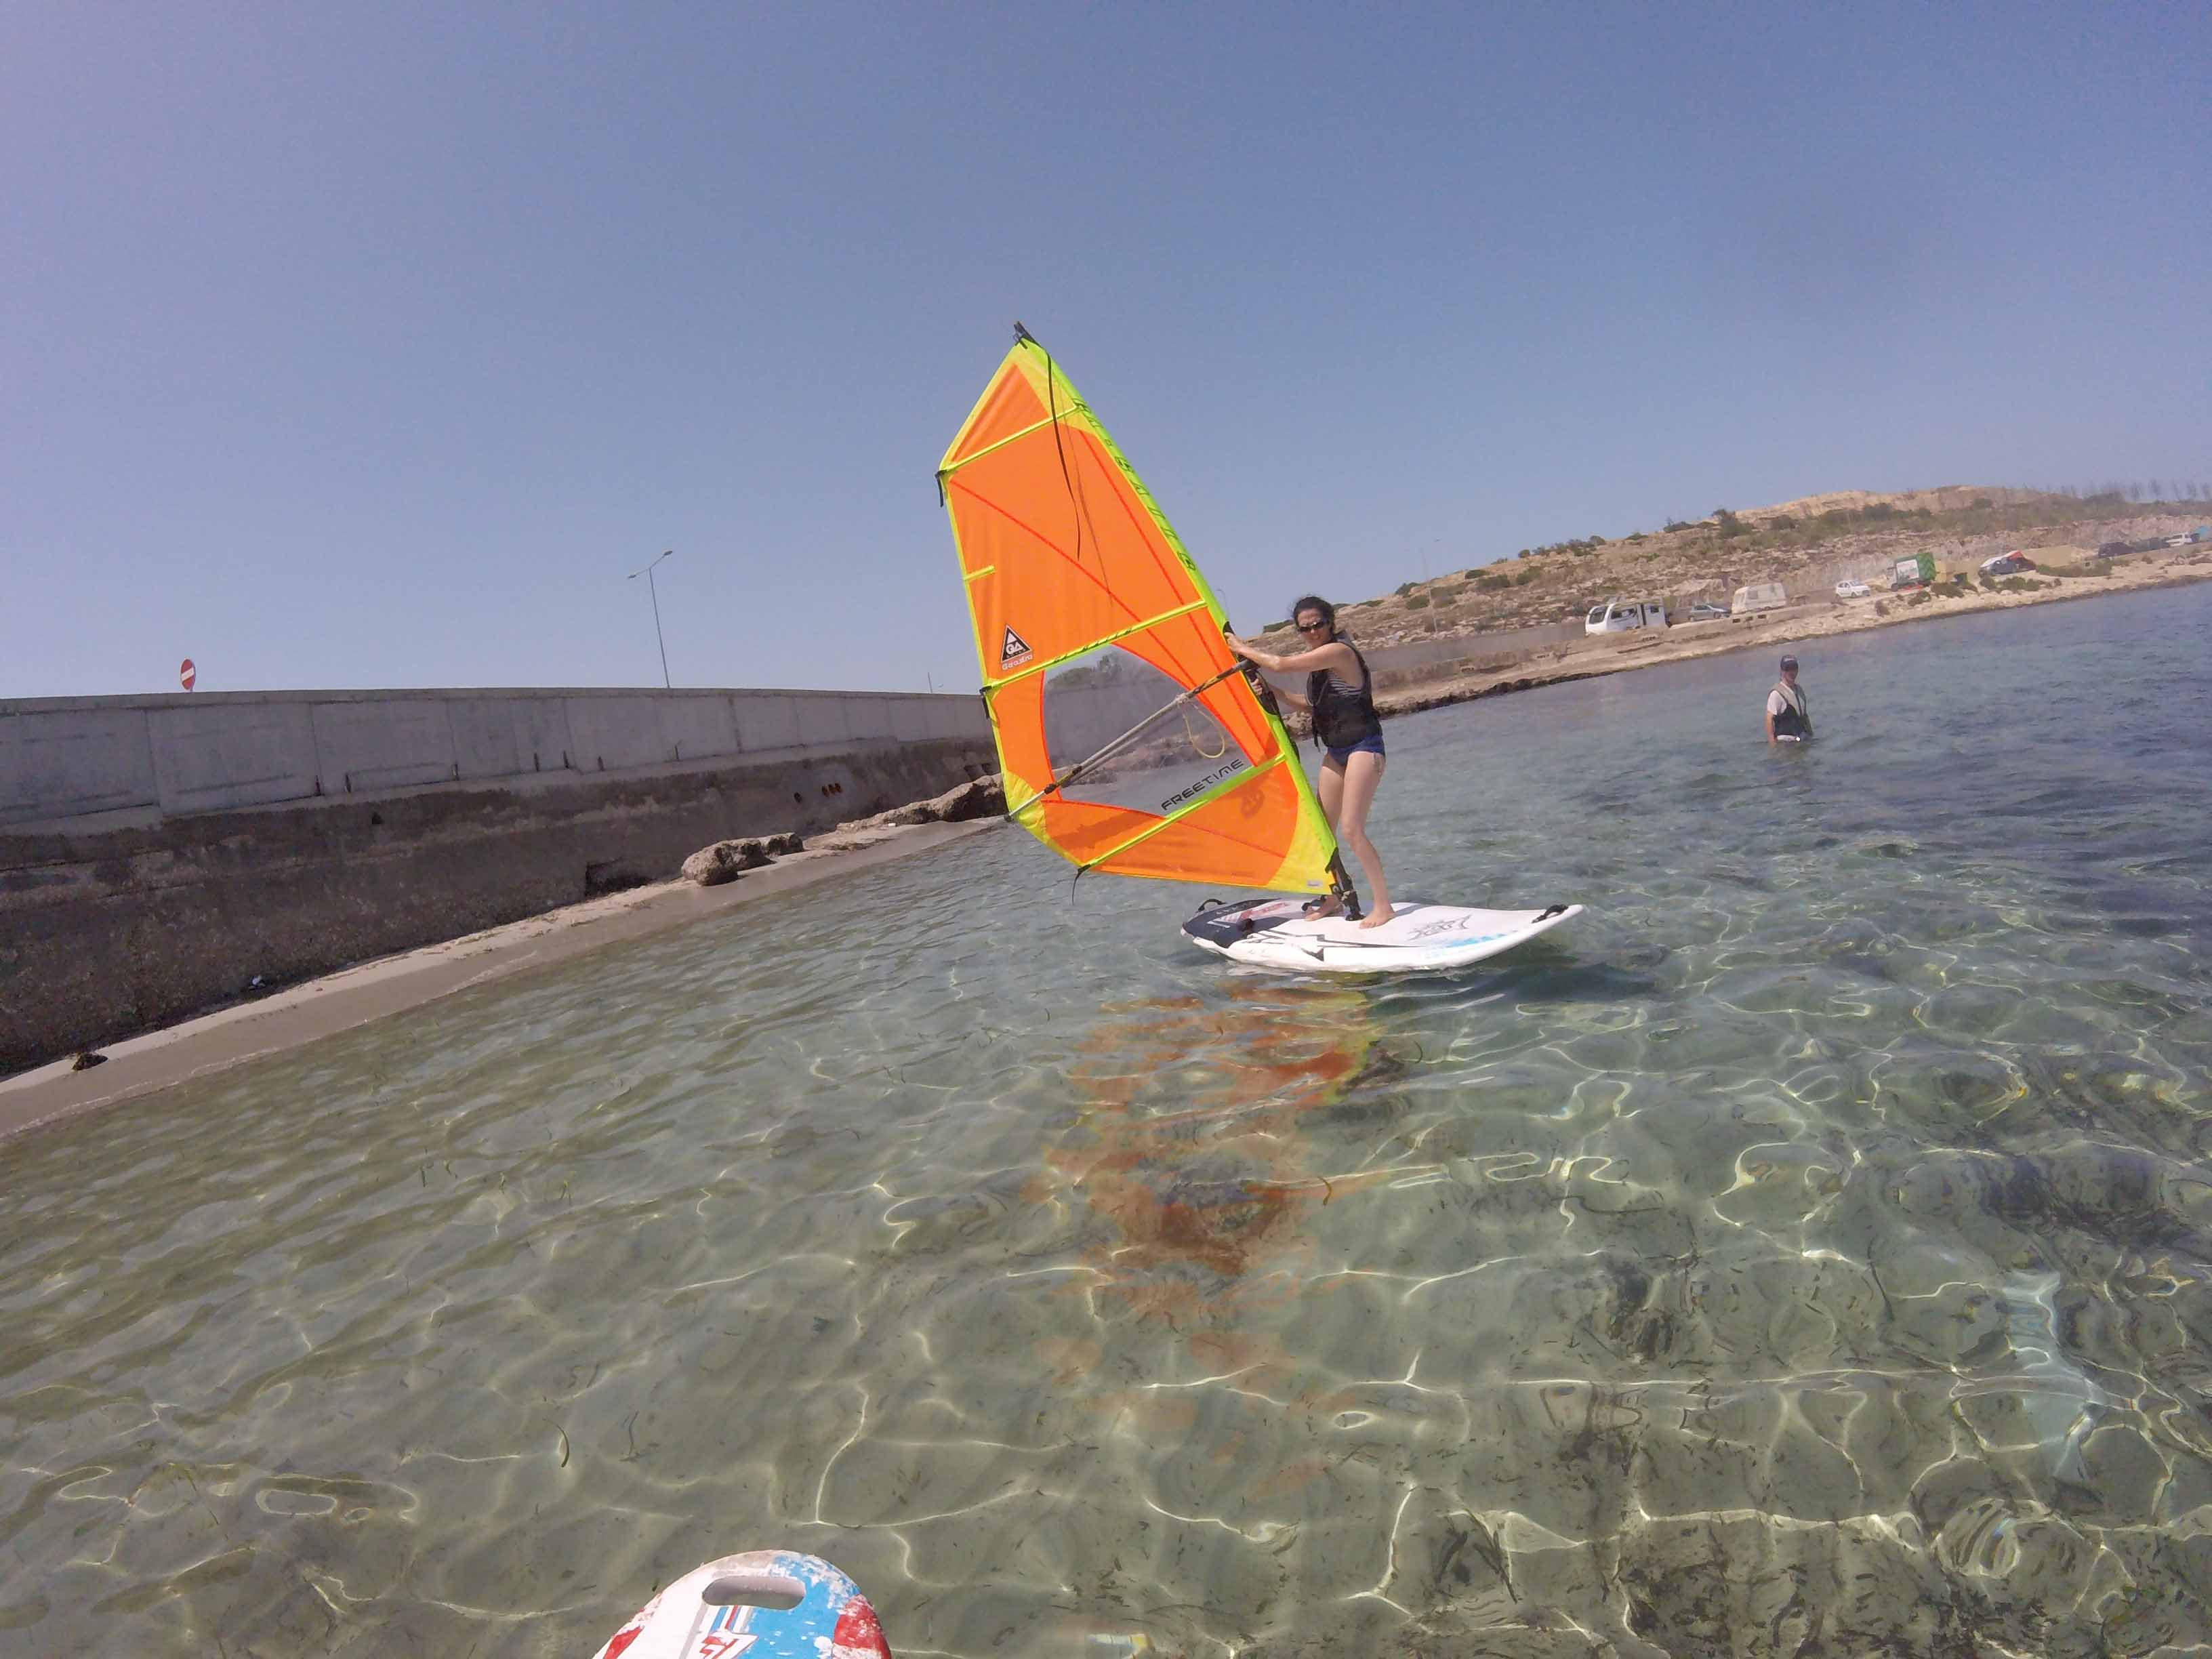 surfingmalta windsurfing school, Sup, Stand up paddle surfing, windsurfing lessons courses,  Malta , sup tours, Coral lagoon, Gnejna, Mellieha, Mscala, St Thomas bay, St P (6)